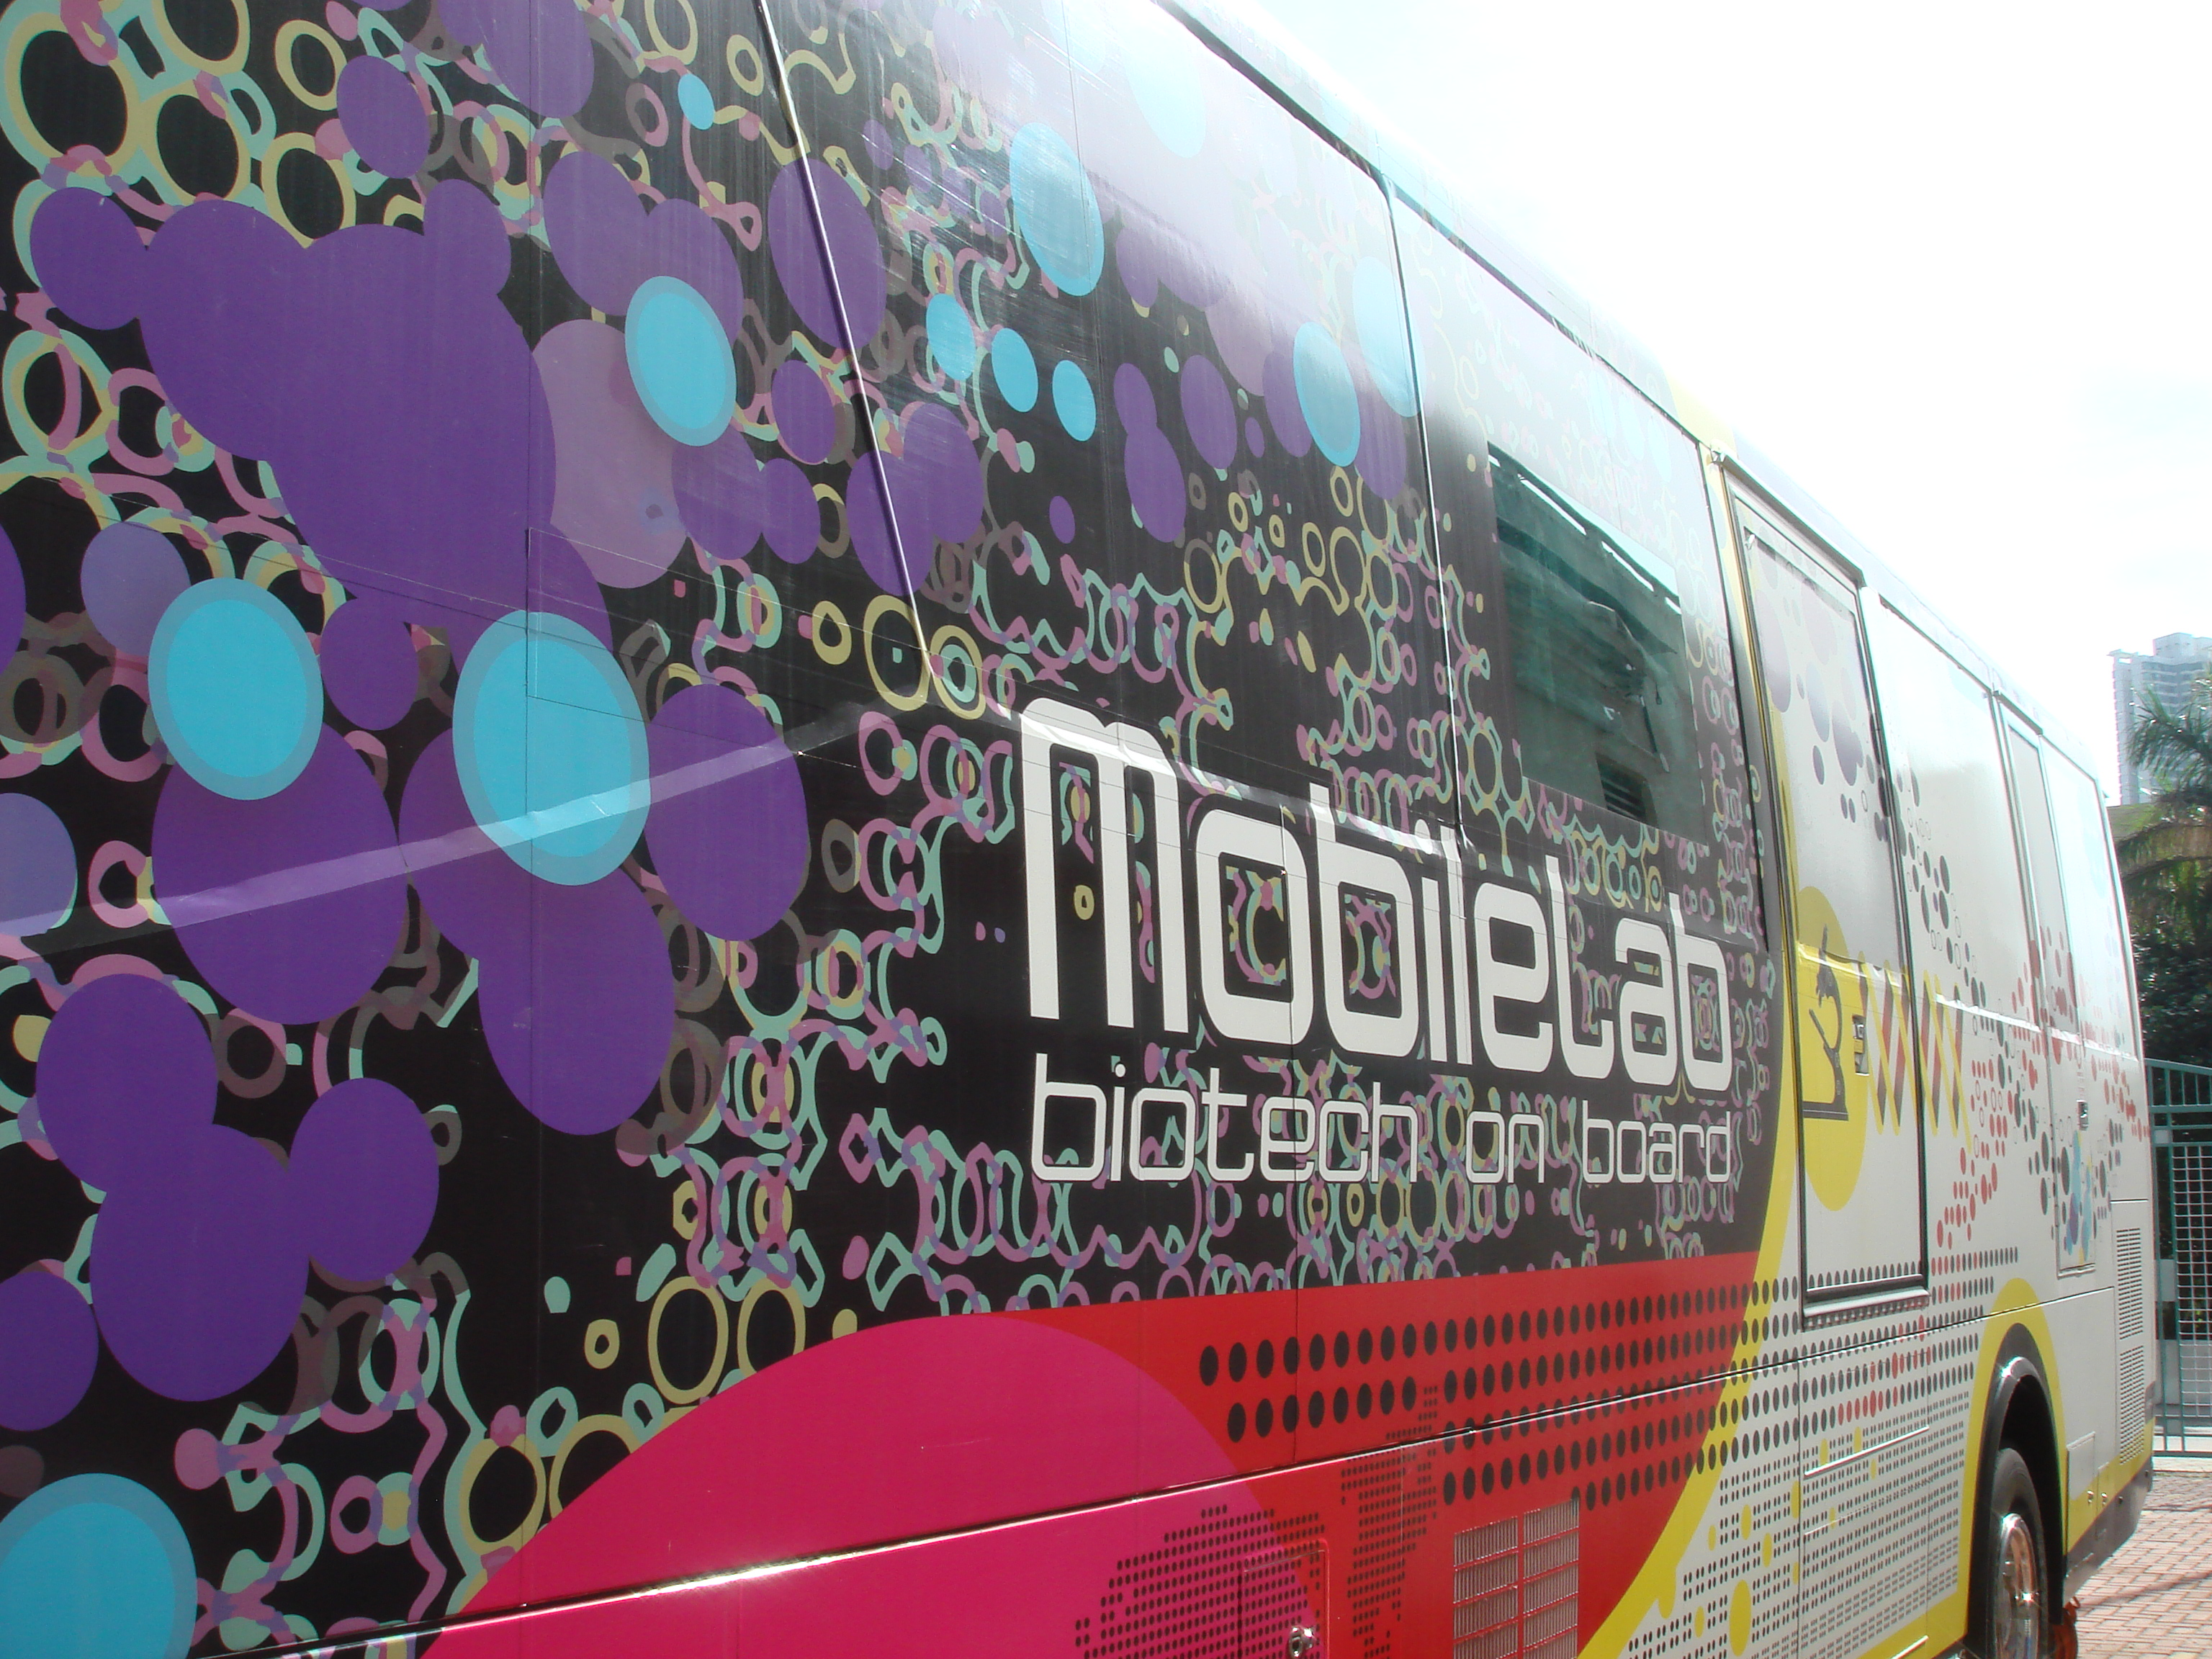 The side of the bus is decorated with nice patterns, and there is a large LCD TV to project the student activities live to the public.